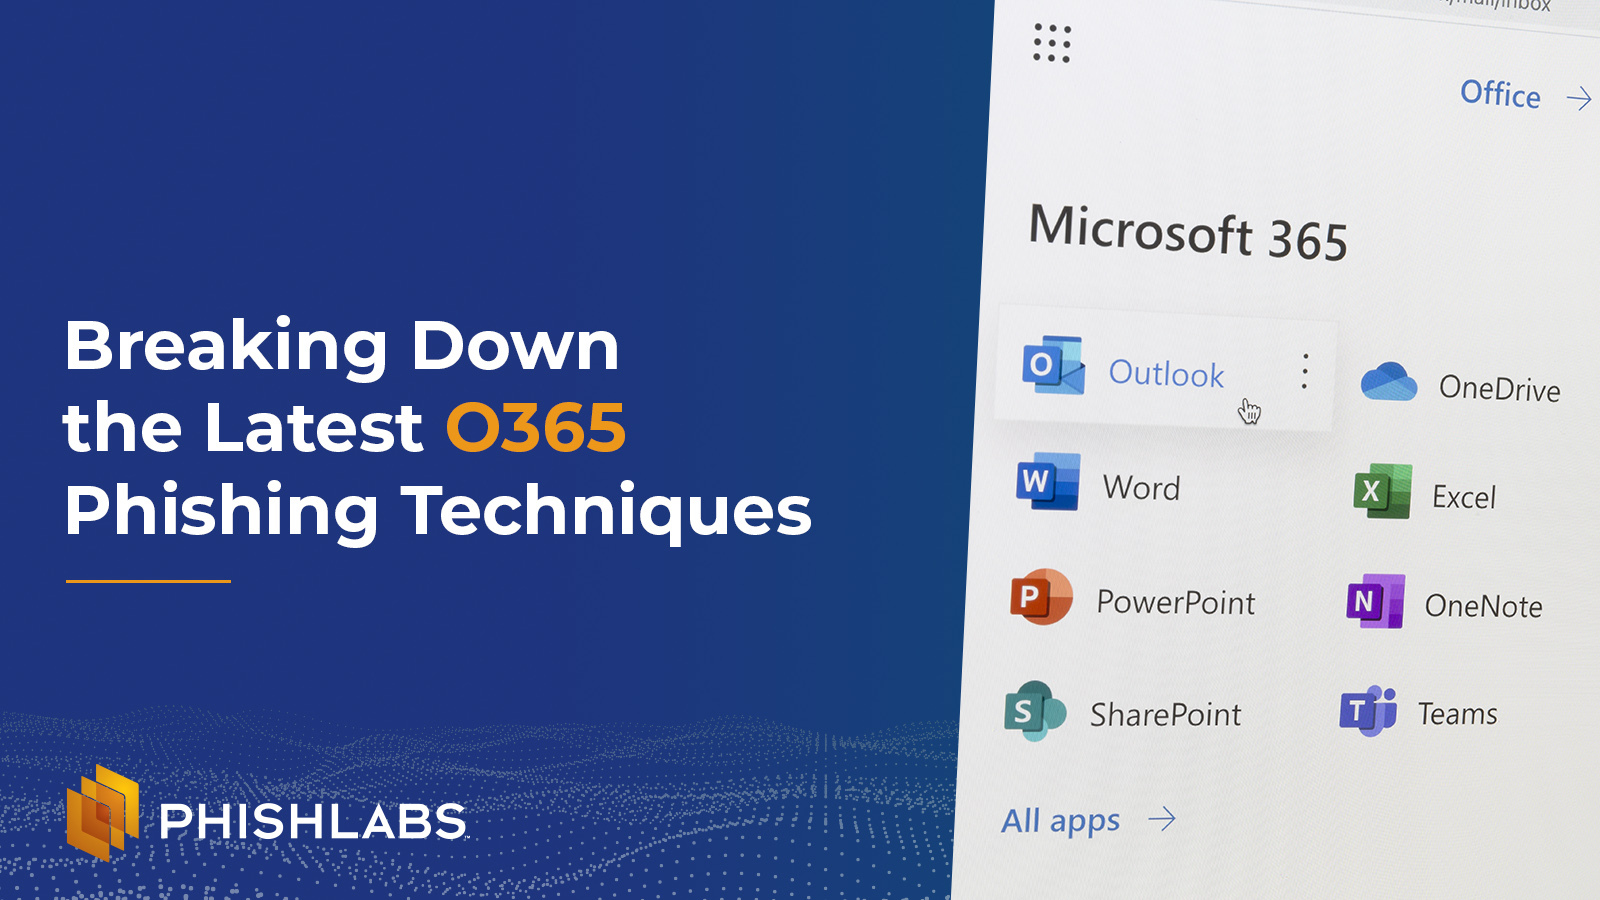 Breaking Down the Latest O365 Phishing Techniques